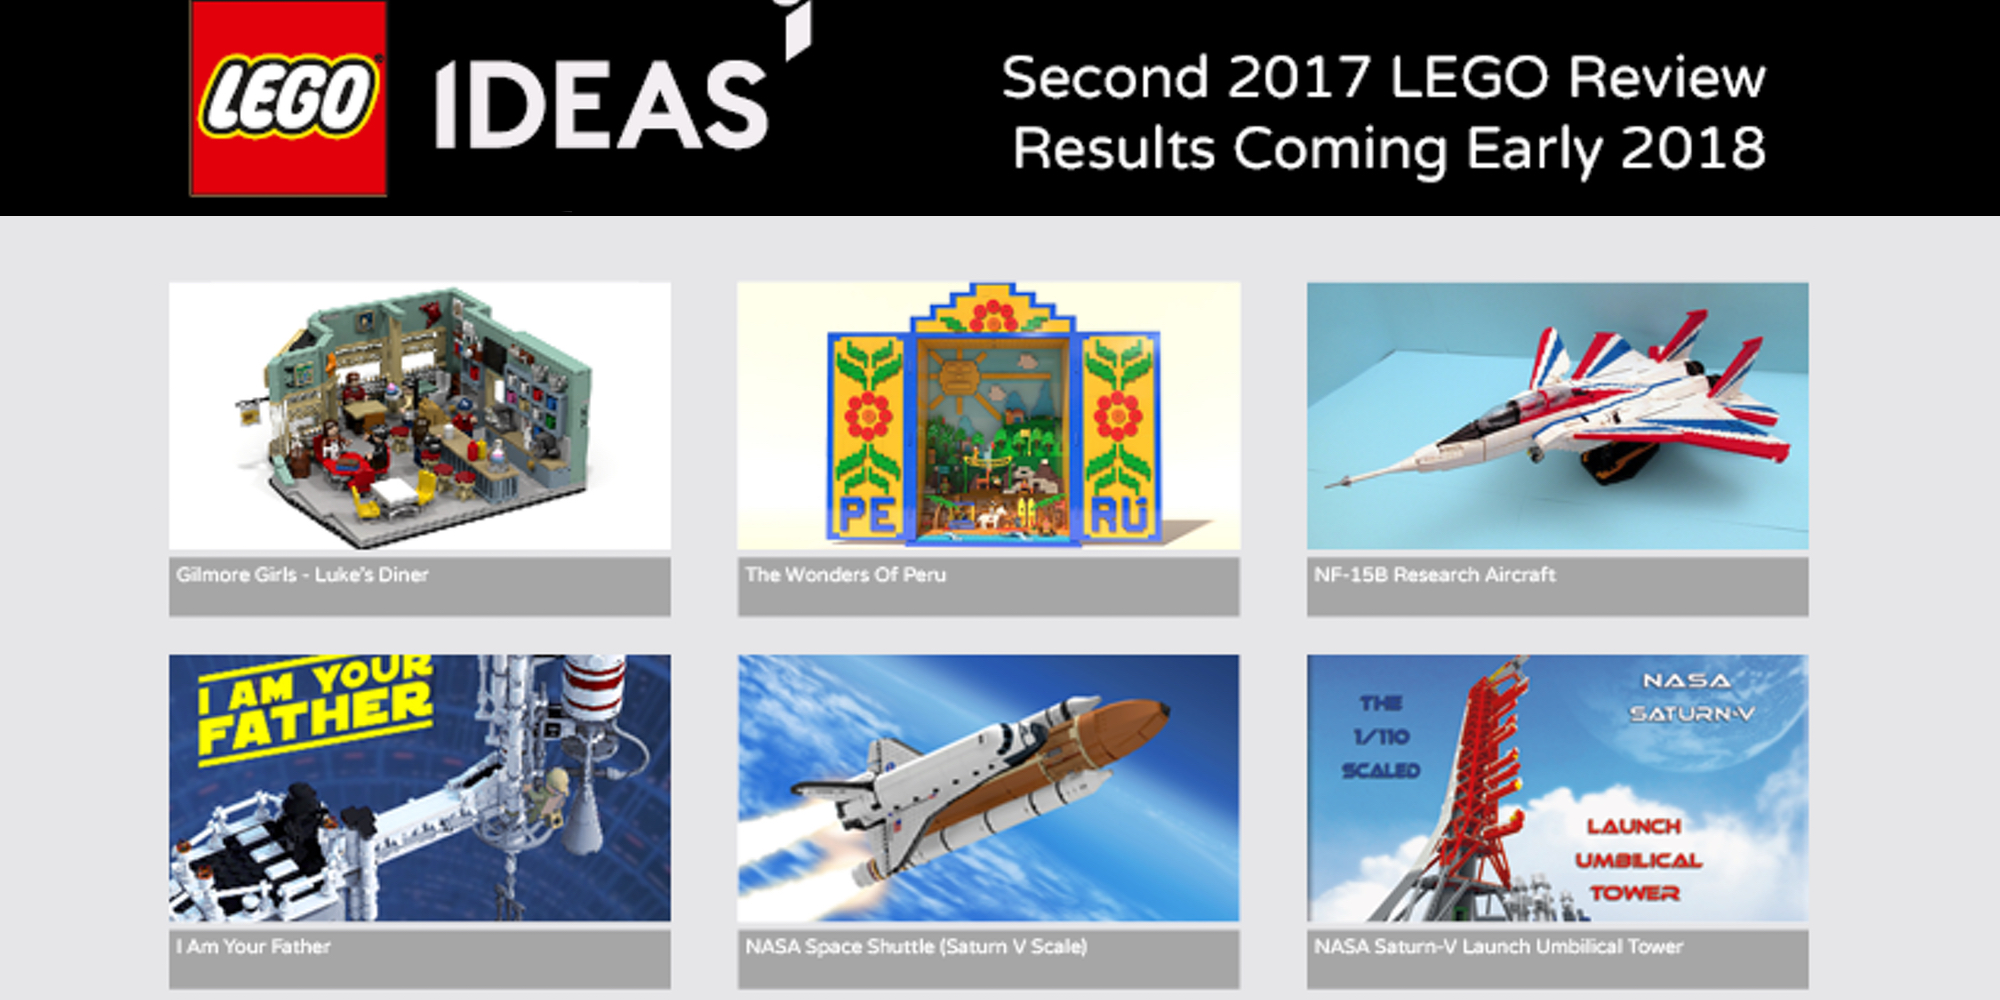 LEGO Ideas announces second half of 2017 results, with an unexpected outcome